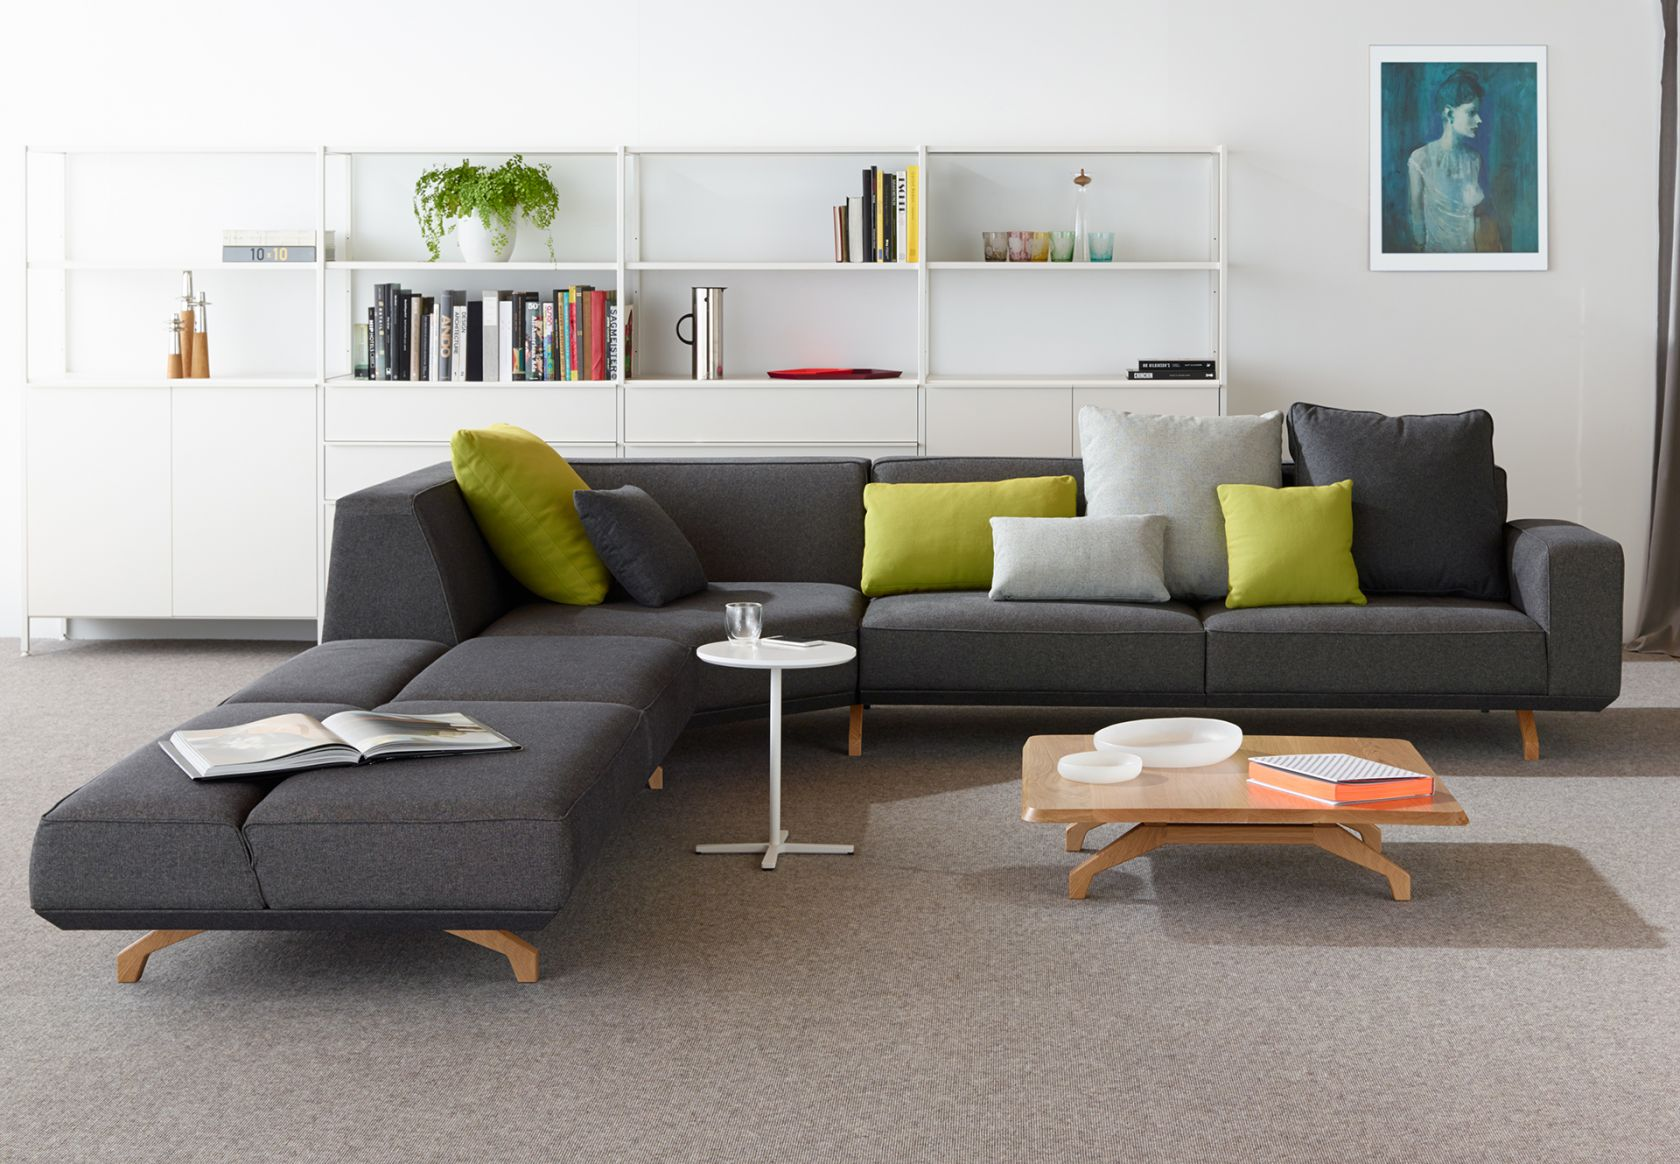 Scatter Platter Cushions, Bomba Sofa, Bomba Table, Kase Storage and Krossi Table